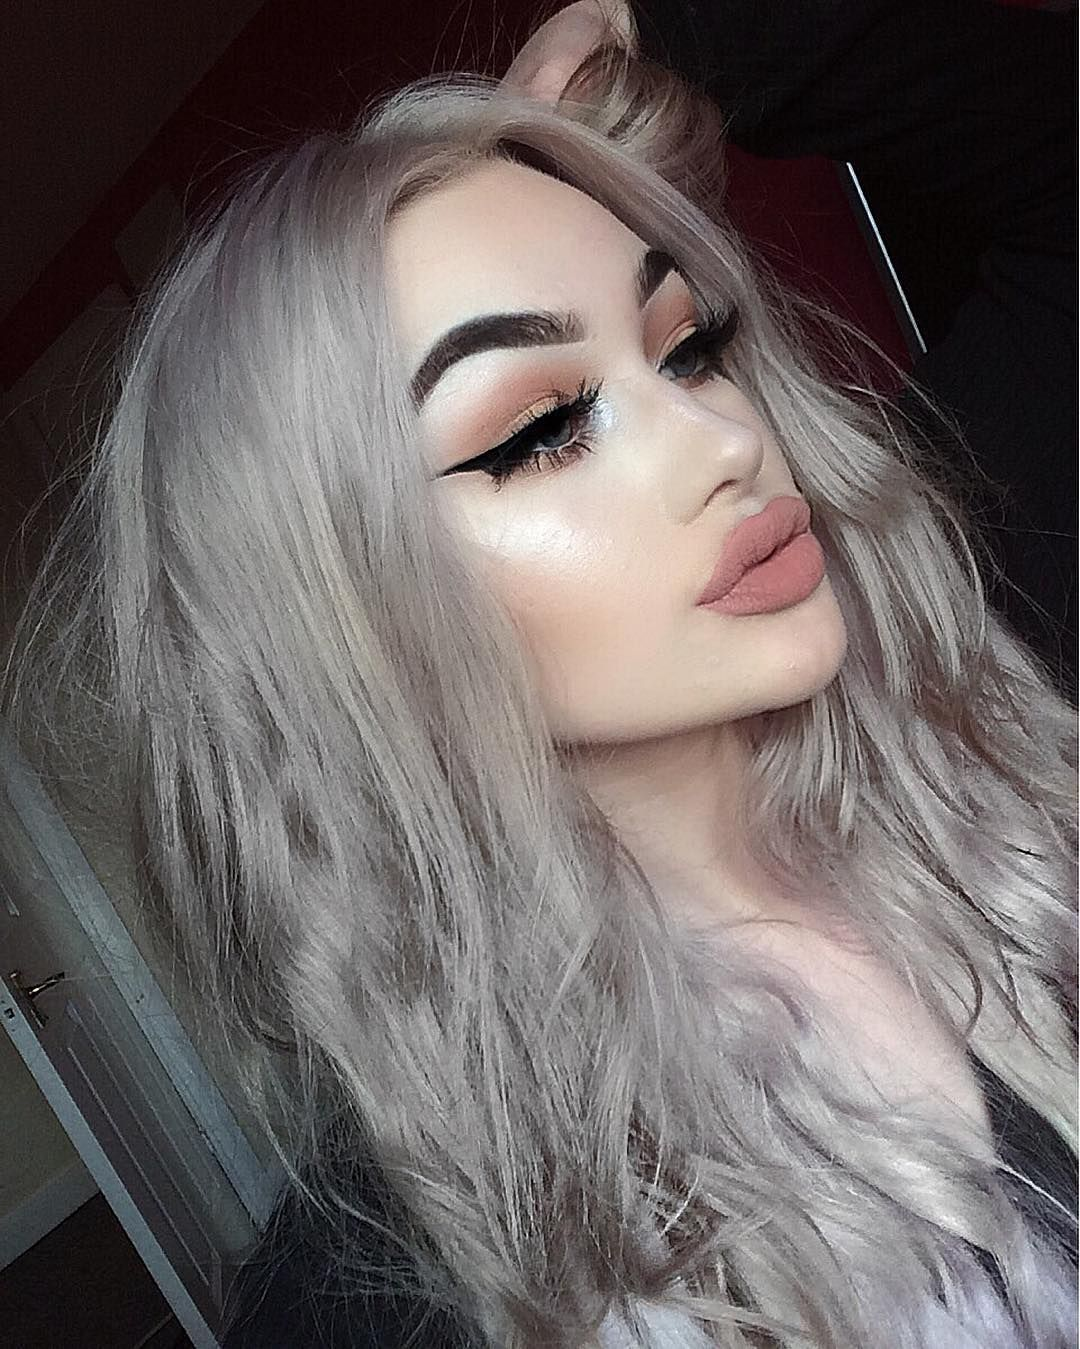 Sparkle shine glitter hair and makeup feathers shimmer - 39 2k Likes 453 Comments Megan Feather Megfeather On Instagram